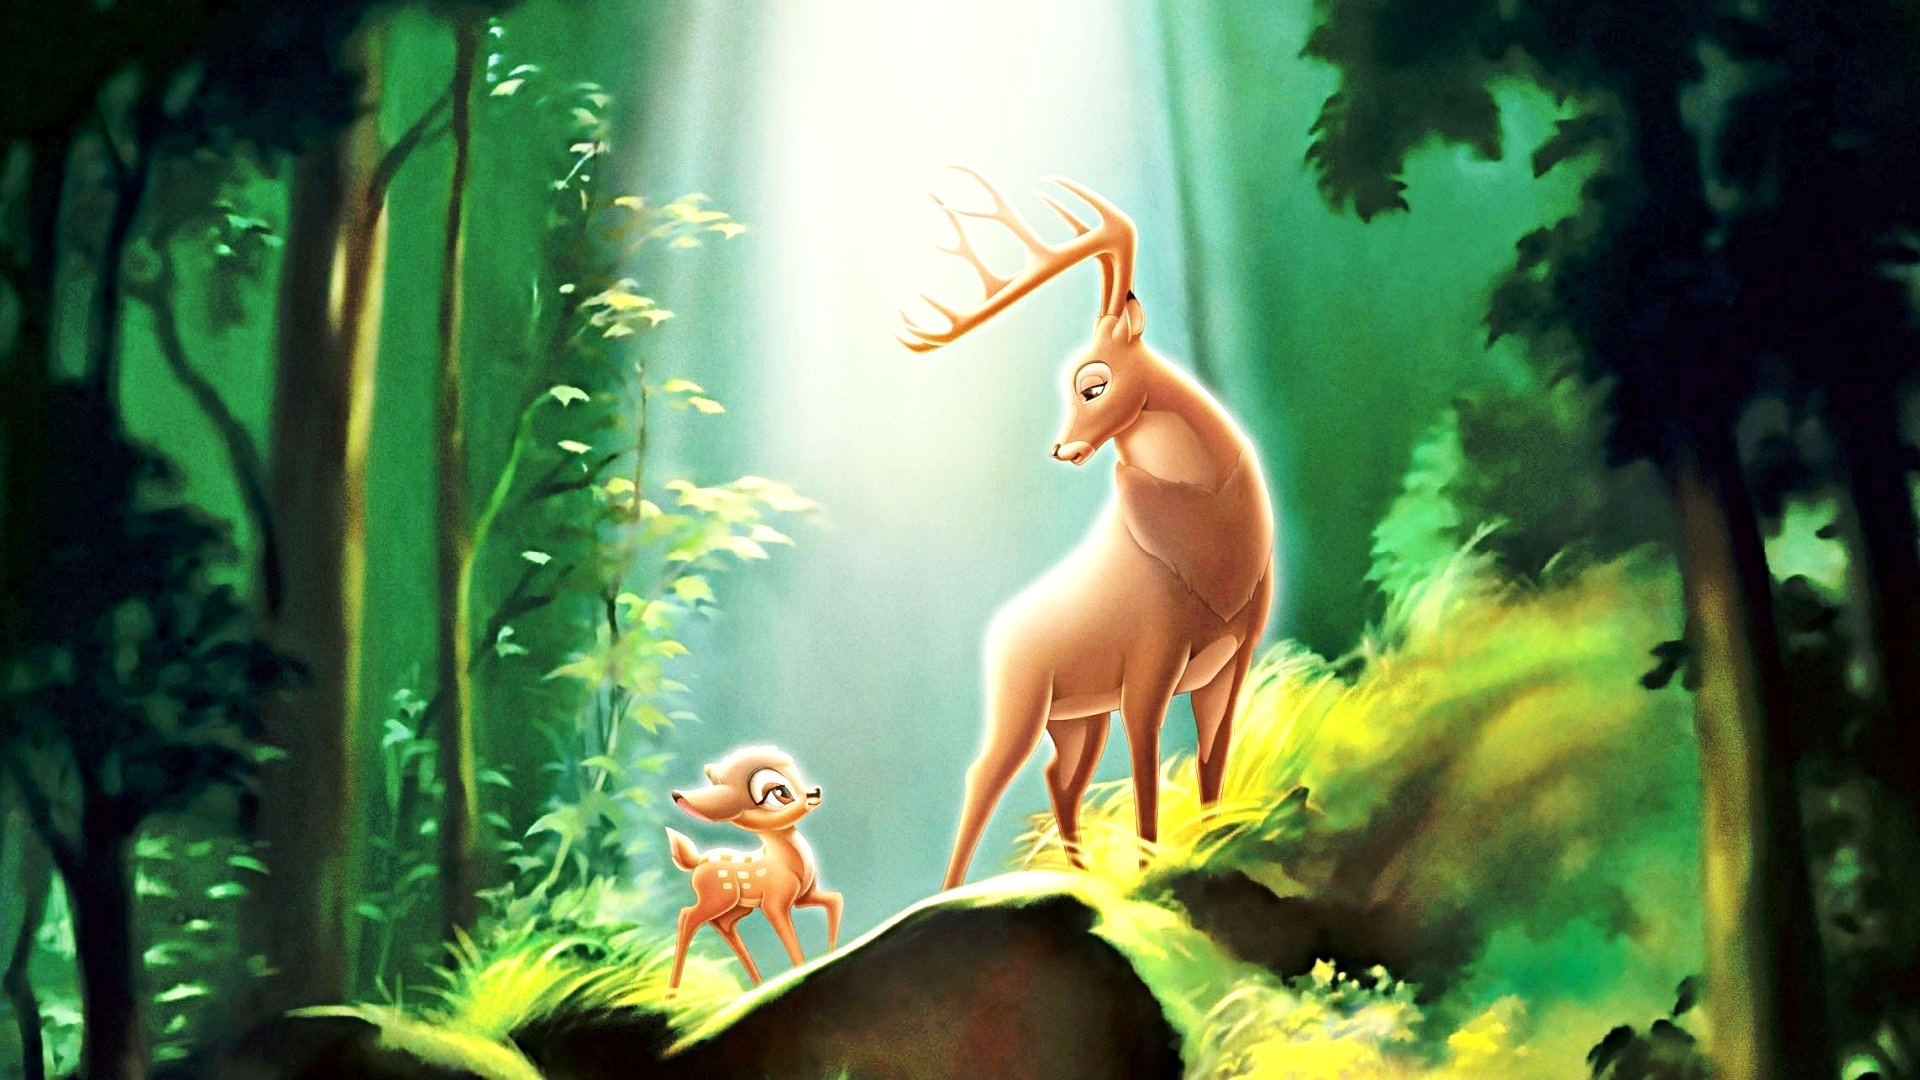 Walt Disney Bambi Desktop Wallpaper 1920x1080